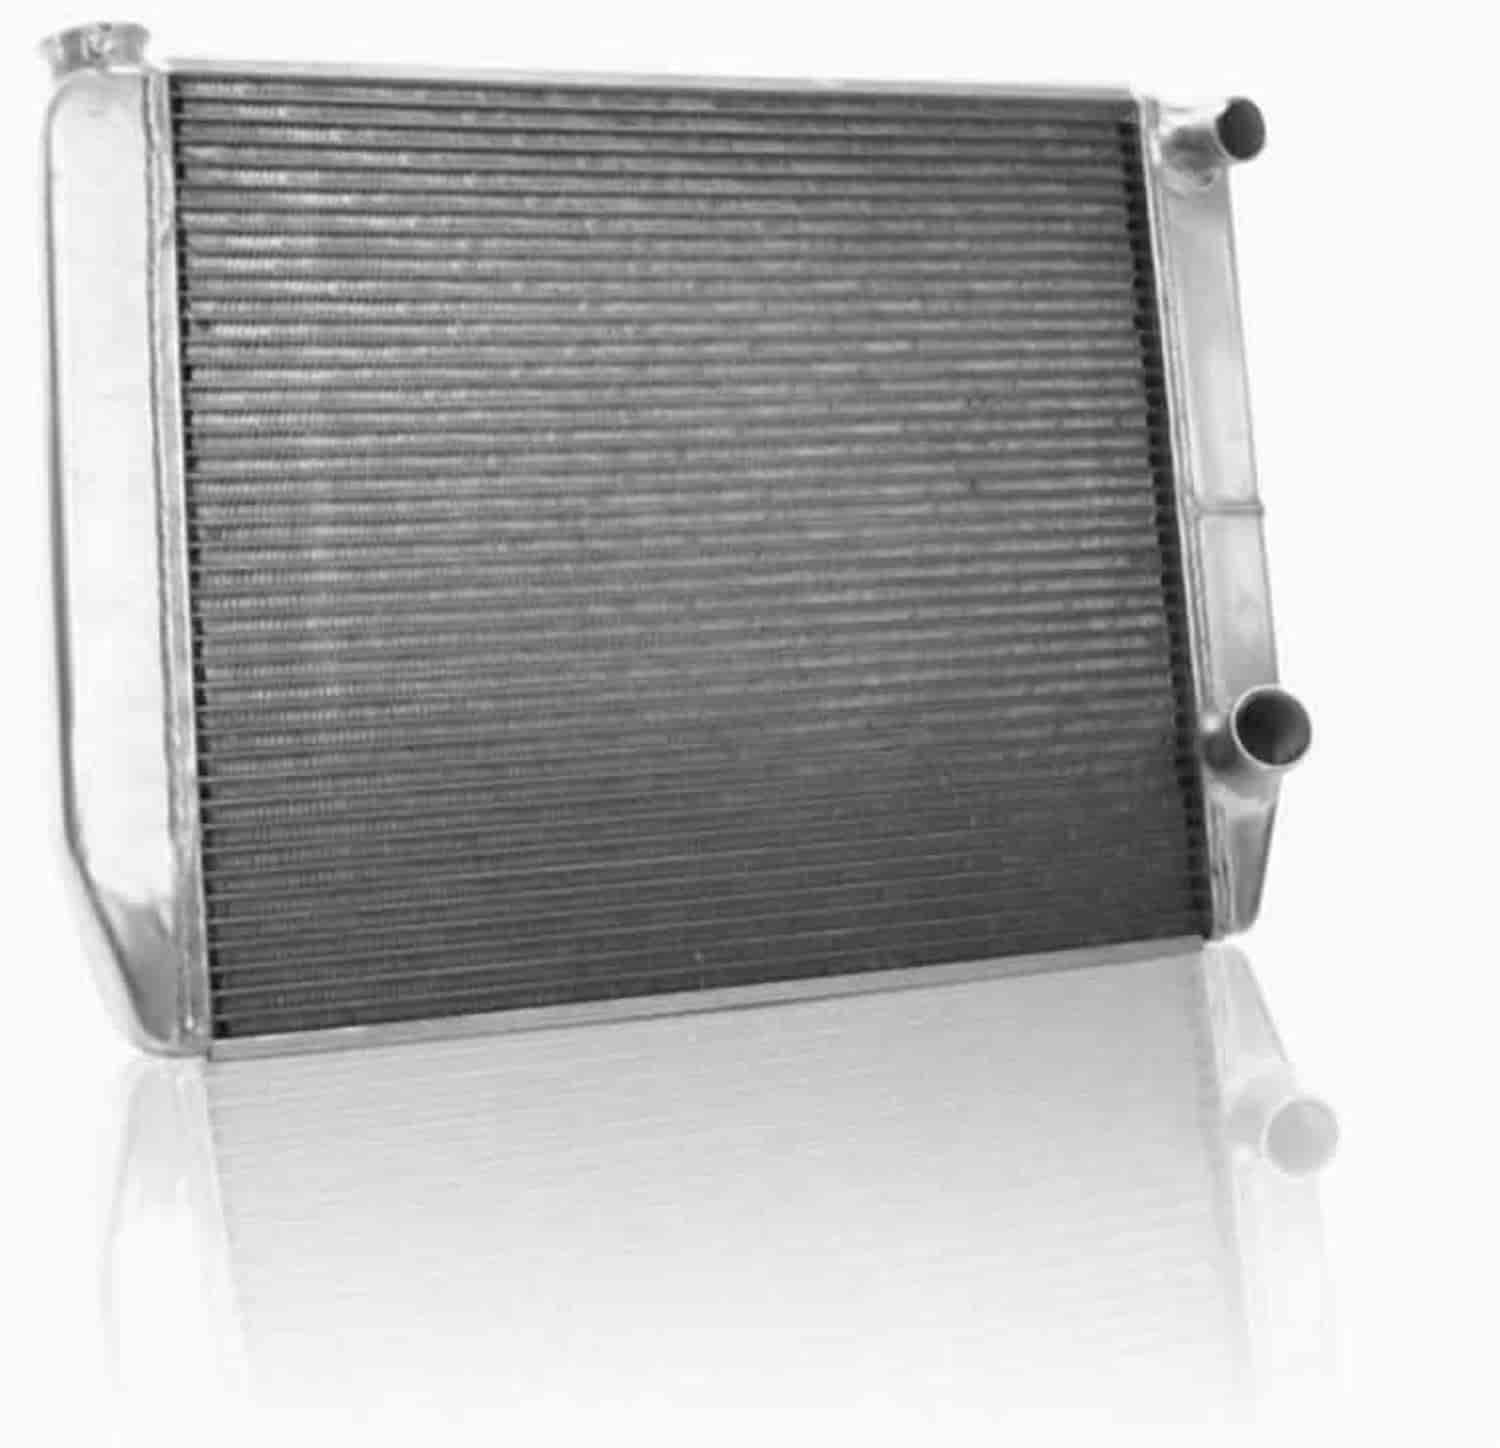 Griffin Radiators 1-28222-XS